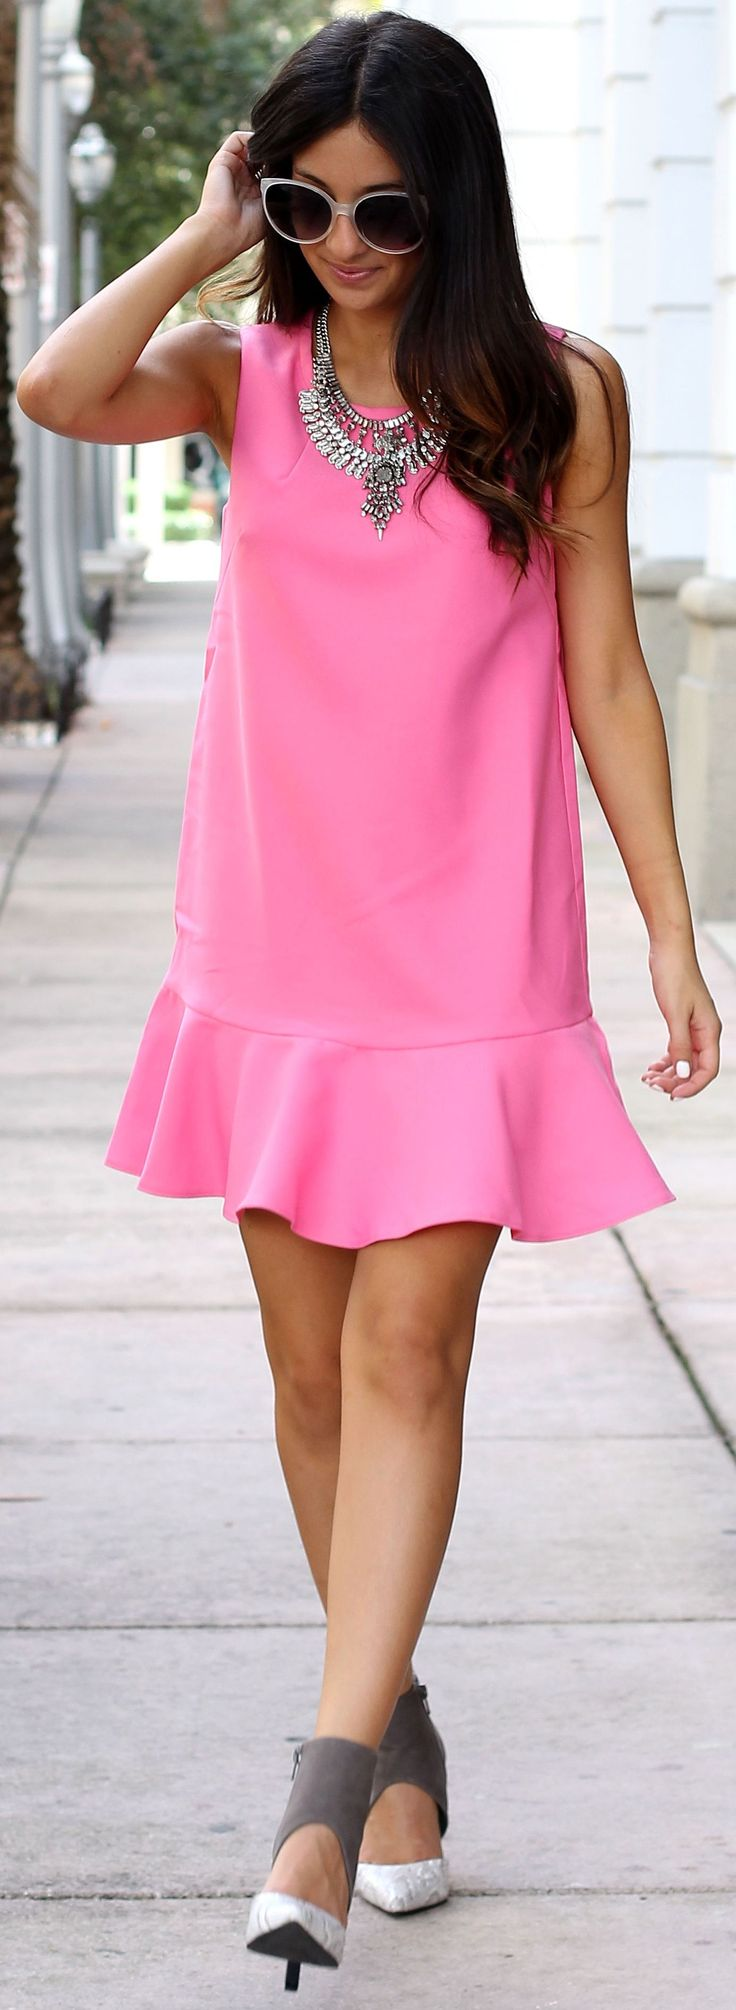 The Material Girl Grey And White Cutout Heels Pretty Ruffle Hem Little Pink Dress Fall Inspo #Fashionistas